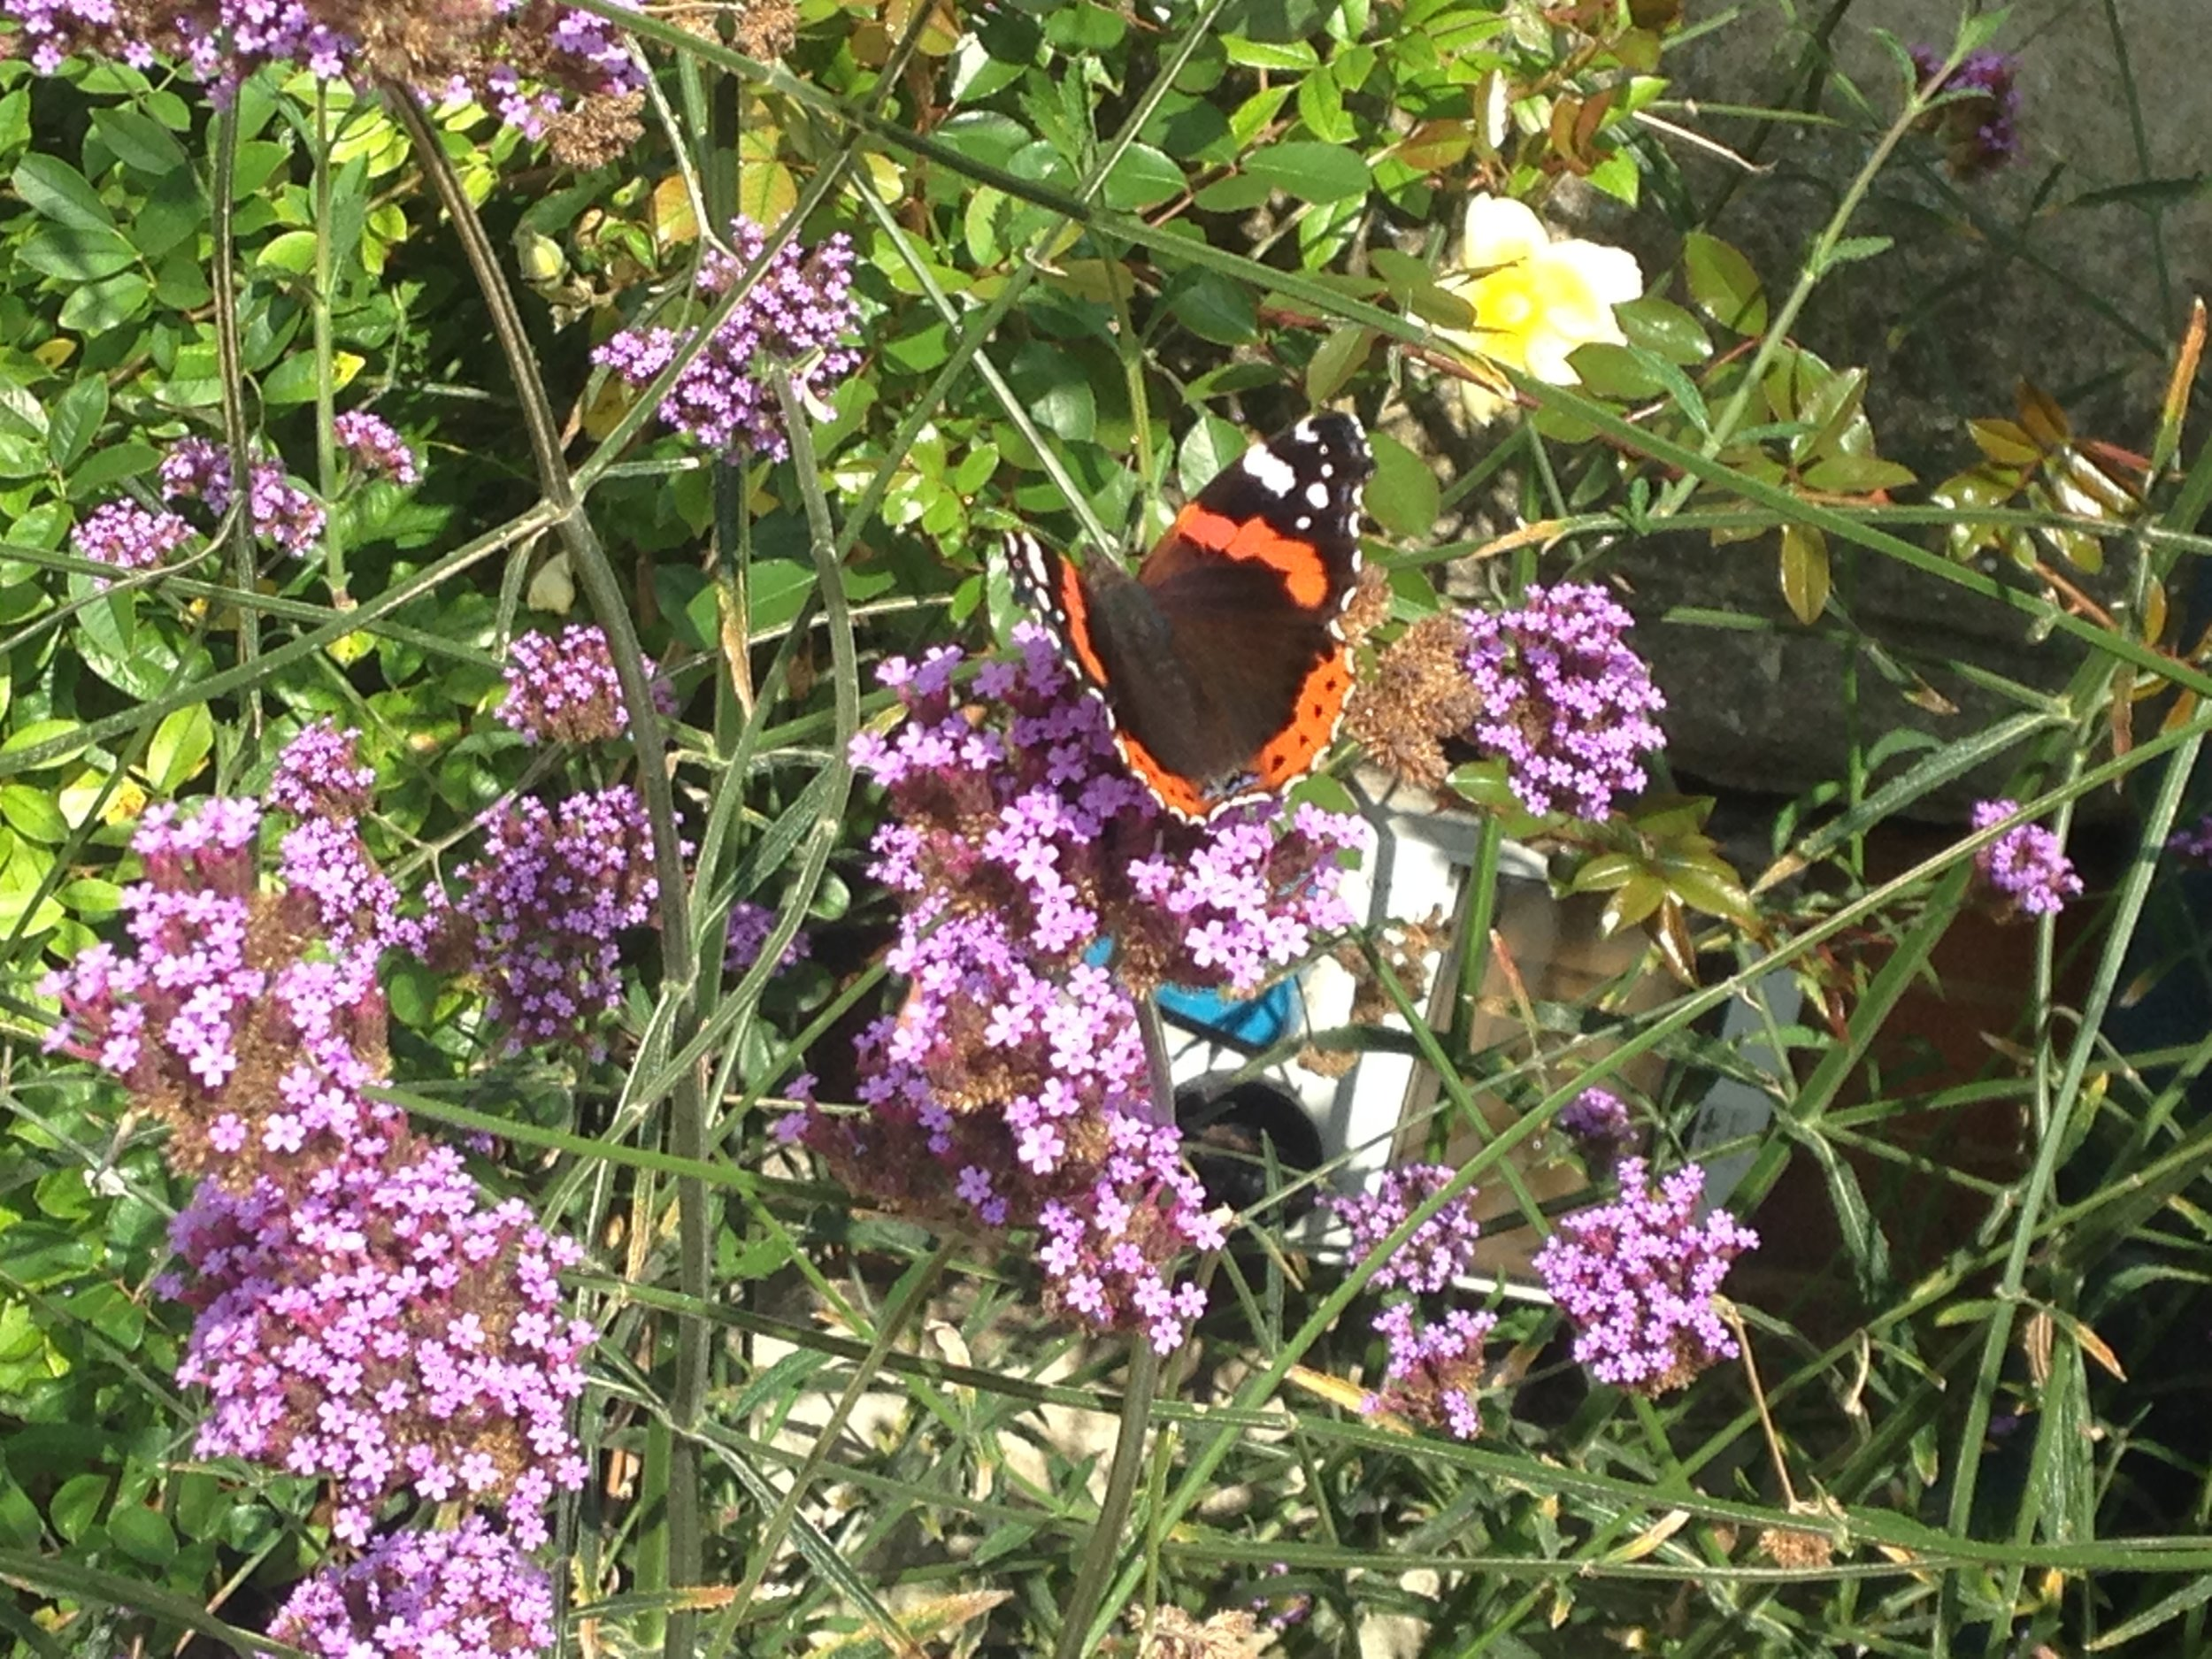 A lovely butterfly I found outside the church. What a gift from God.